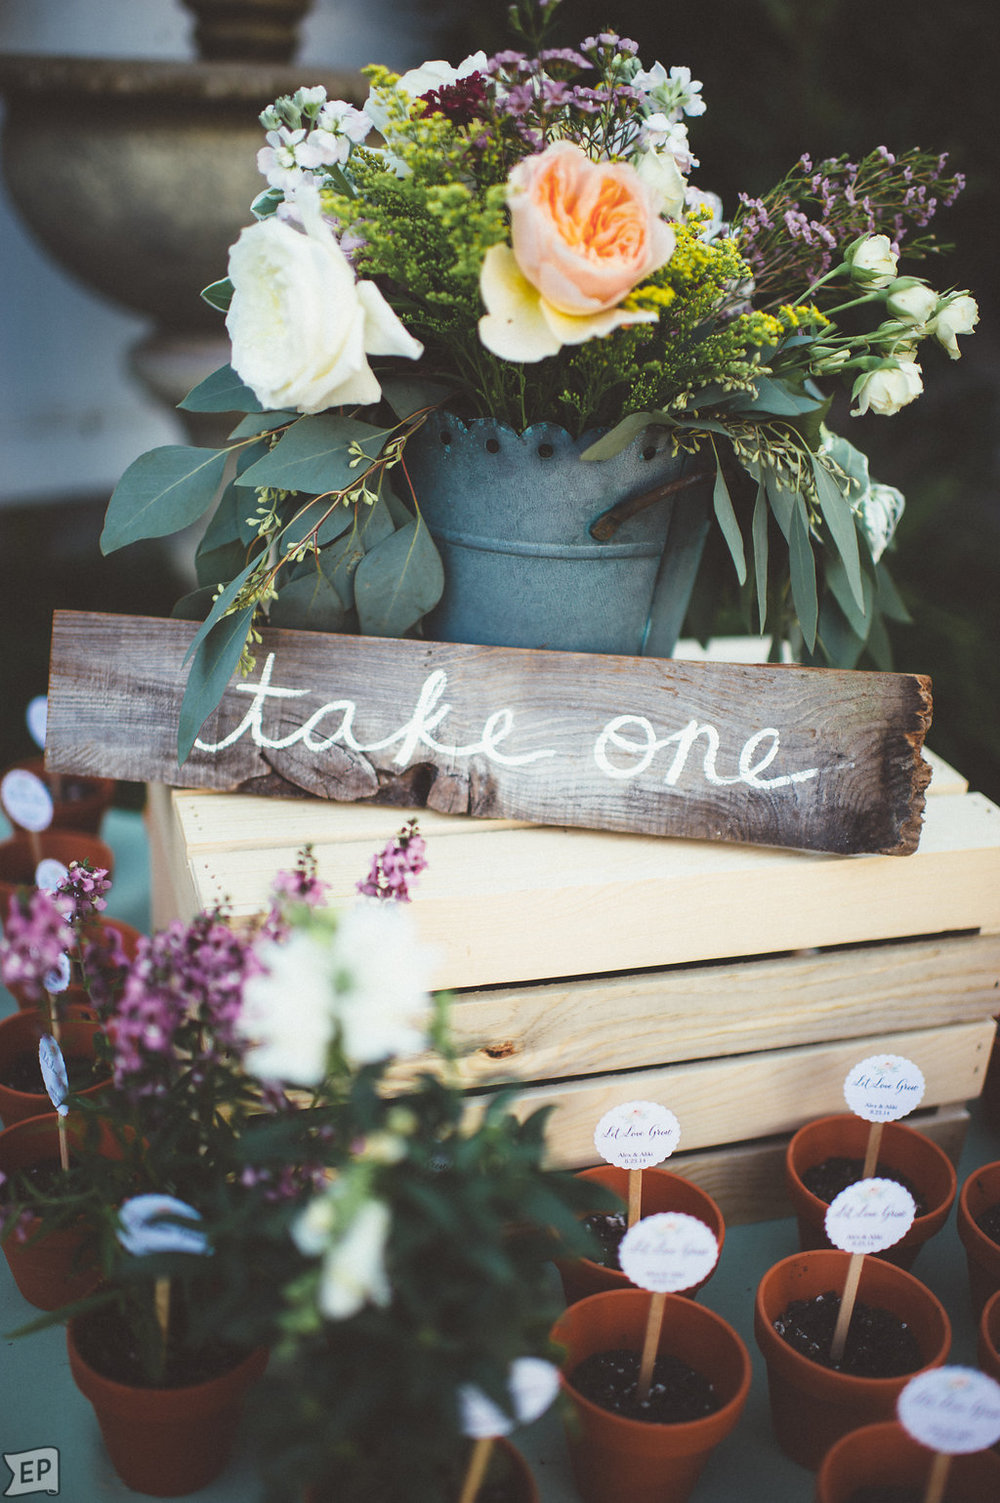 Alex & Aliki | The Perry House | Monterey, CA   Event Design & Planning, Floral Design, Signage, Favors